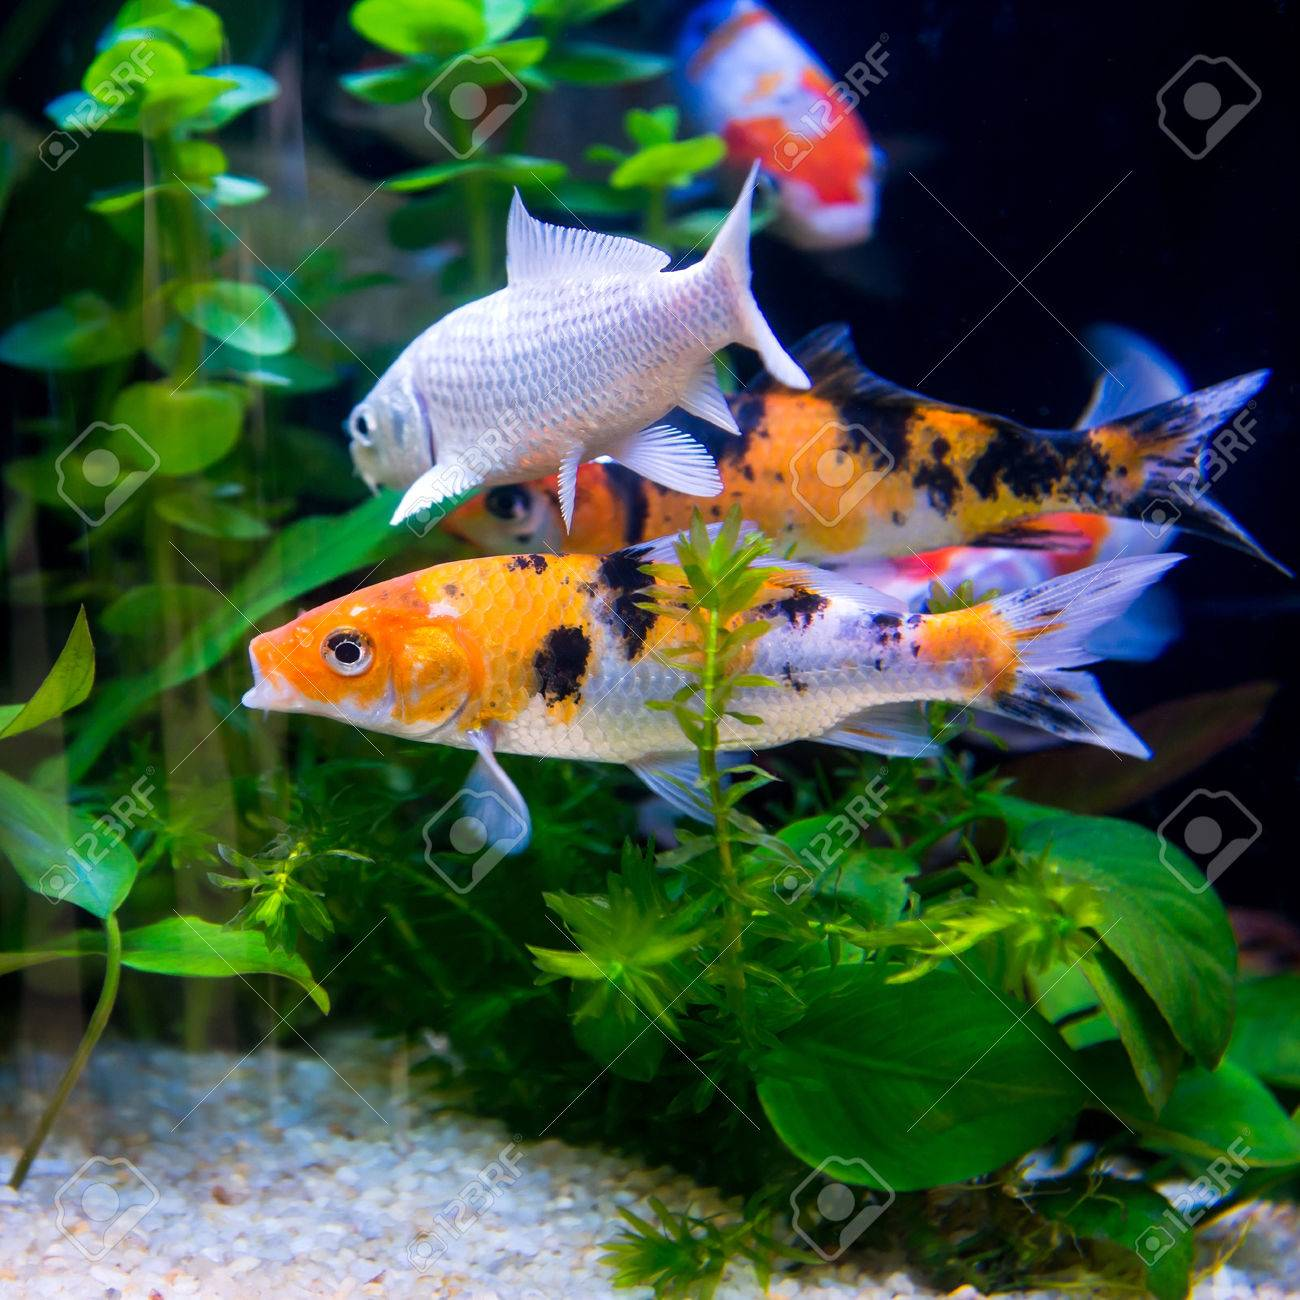 The Colorful Koi Fishes Or Golden Fish Swim Carefree In The Aquarium ...